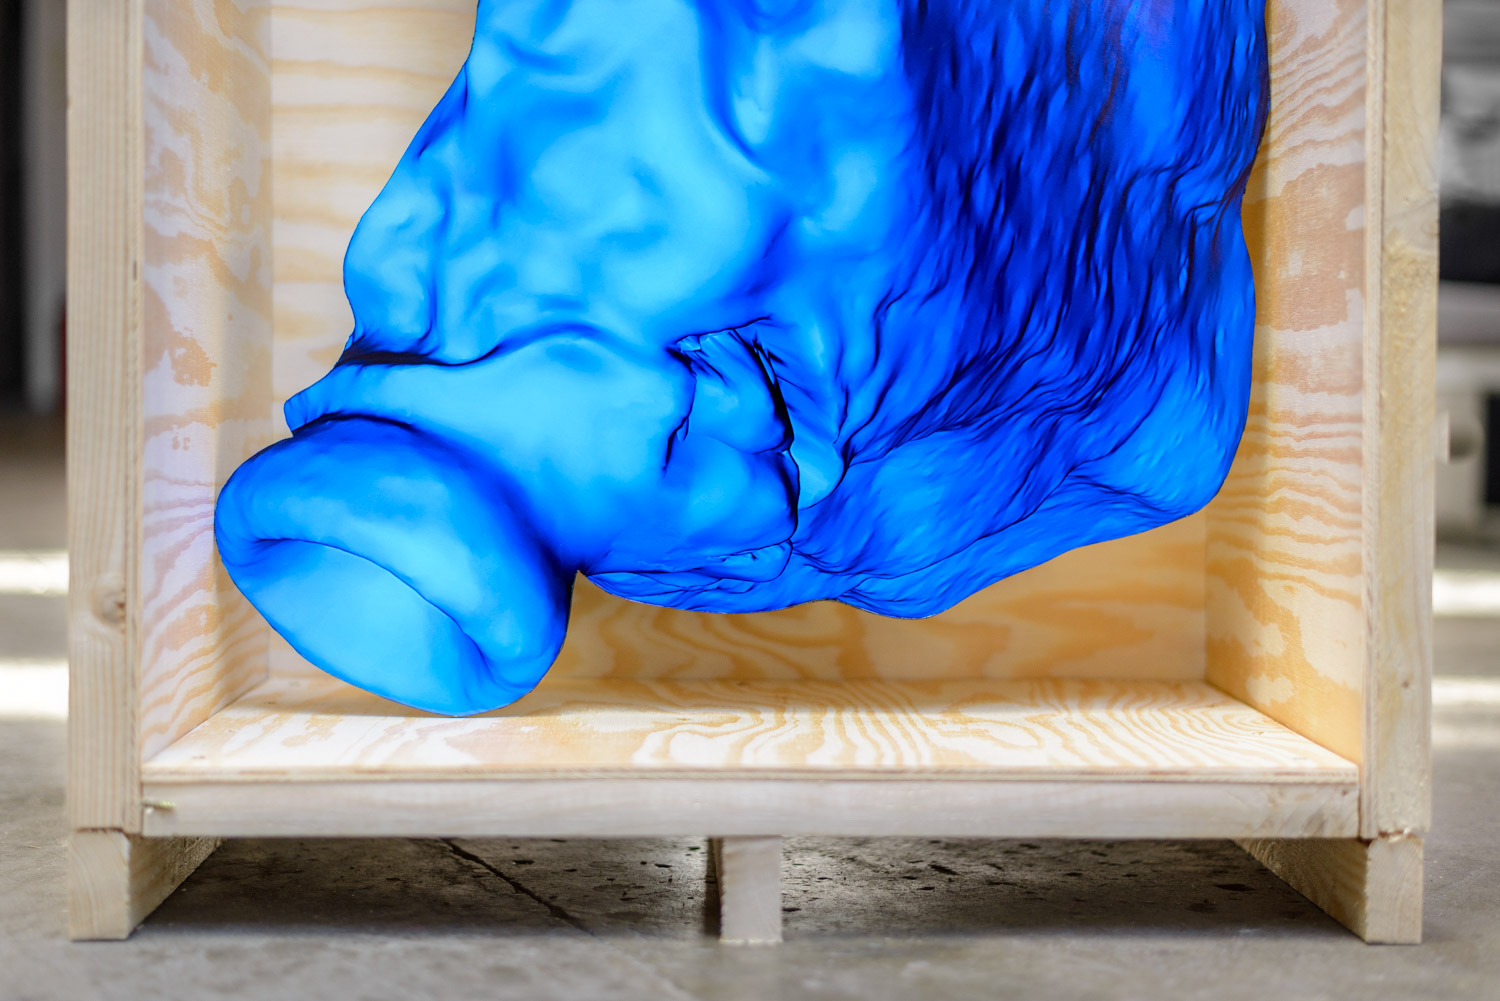 abstract 3d print in a wooden crate by artist Stefano Conti